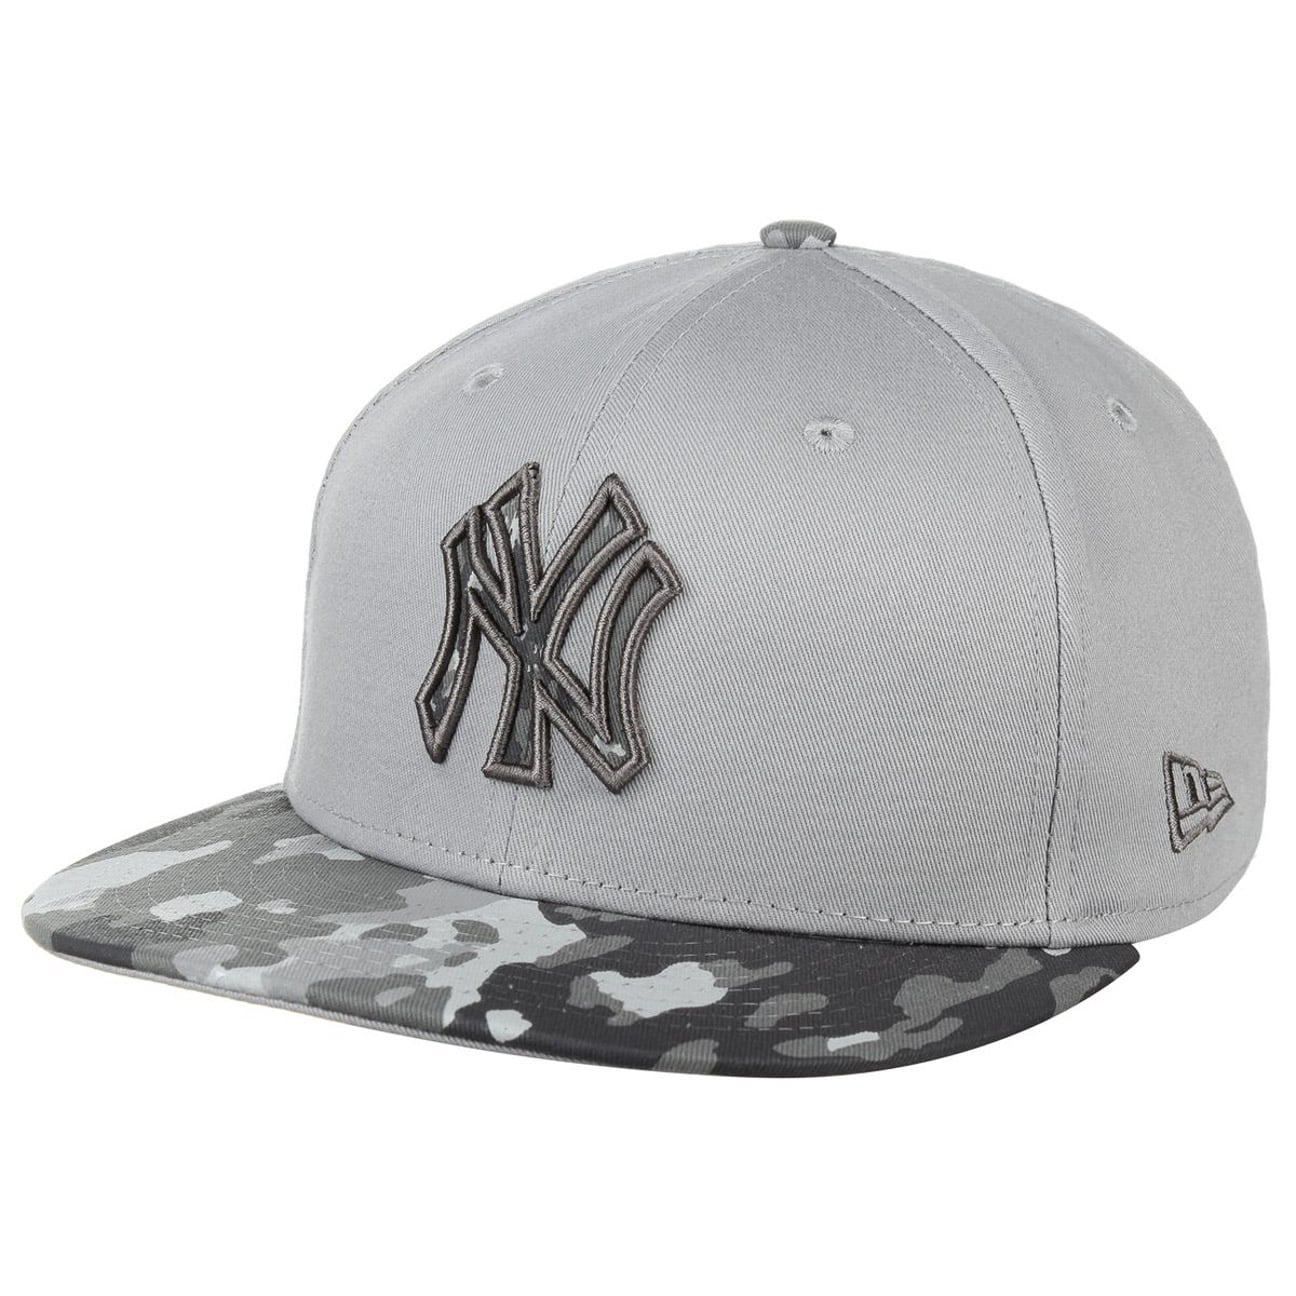 camo break ny baseball cap by new era eur 25 00 hats. Black Bedroom Furniture Sets. Home Design Ideas